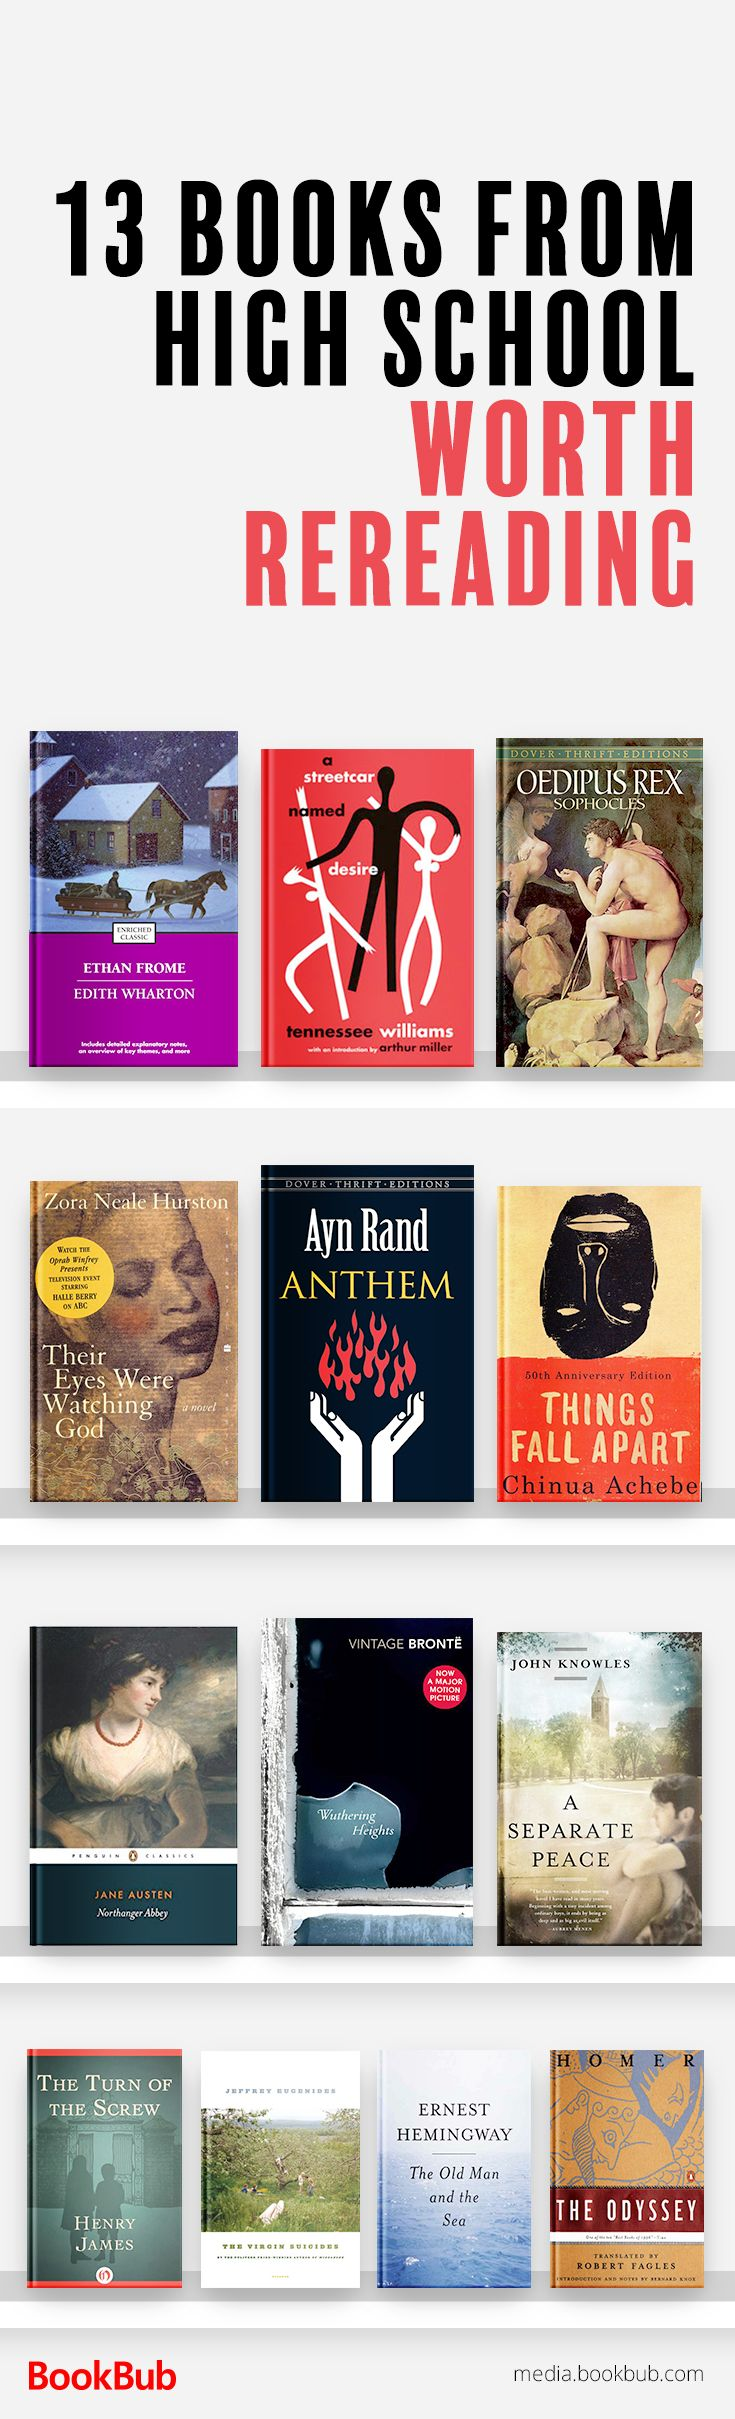 Katherine Kersten: Why students should read the classics